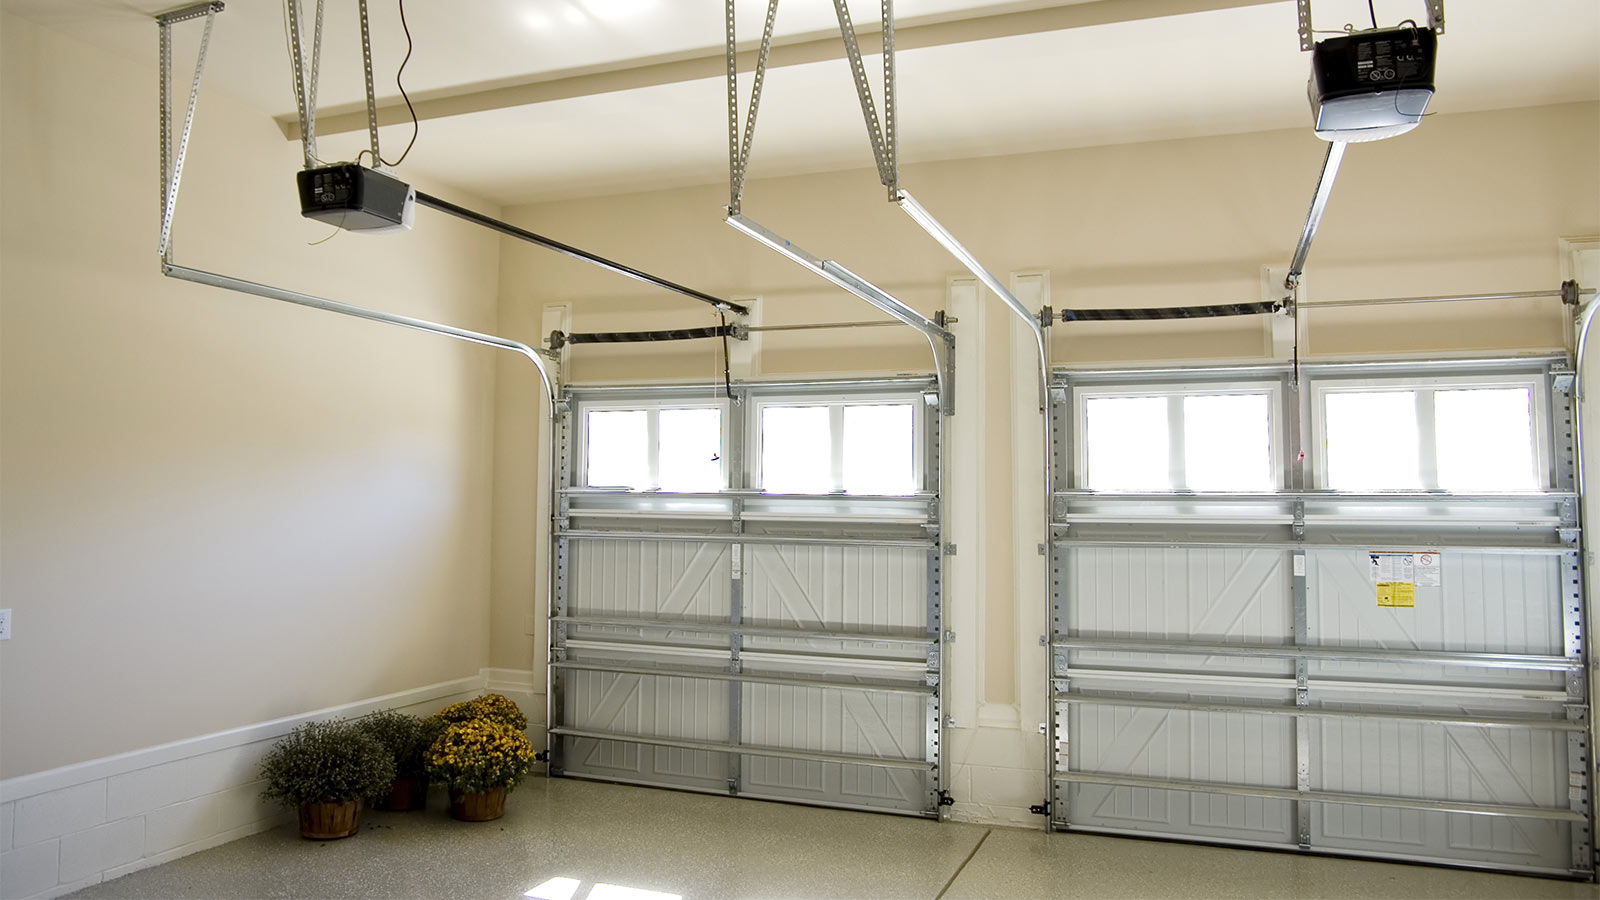 Sectional Garage Doors from Roller Shutters Harlow suppliers.